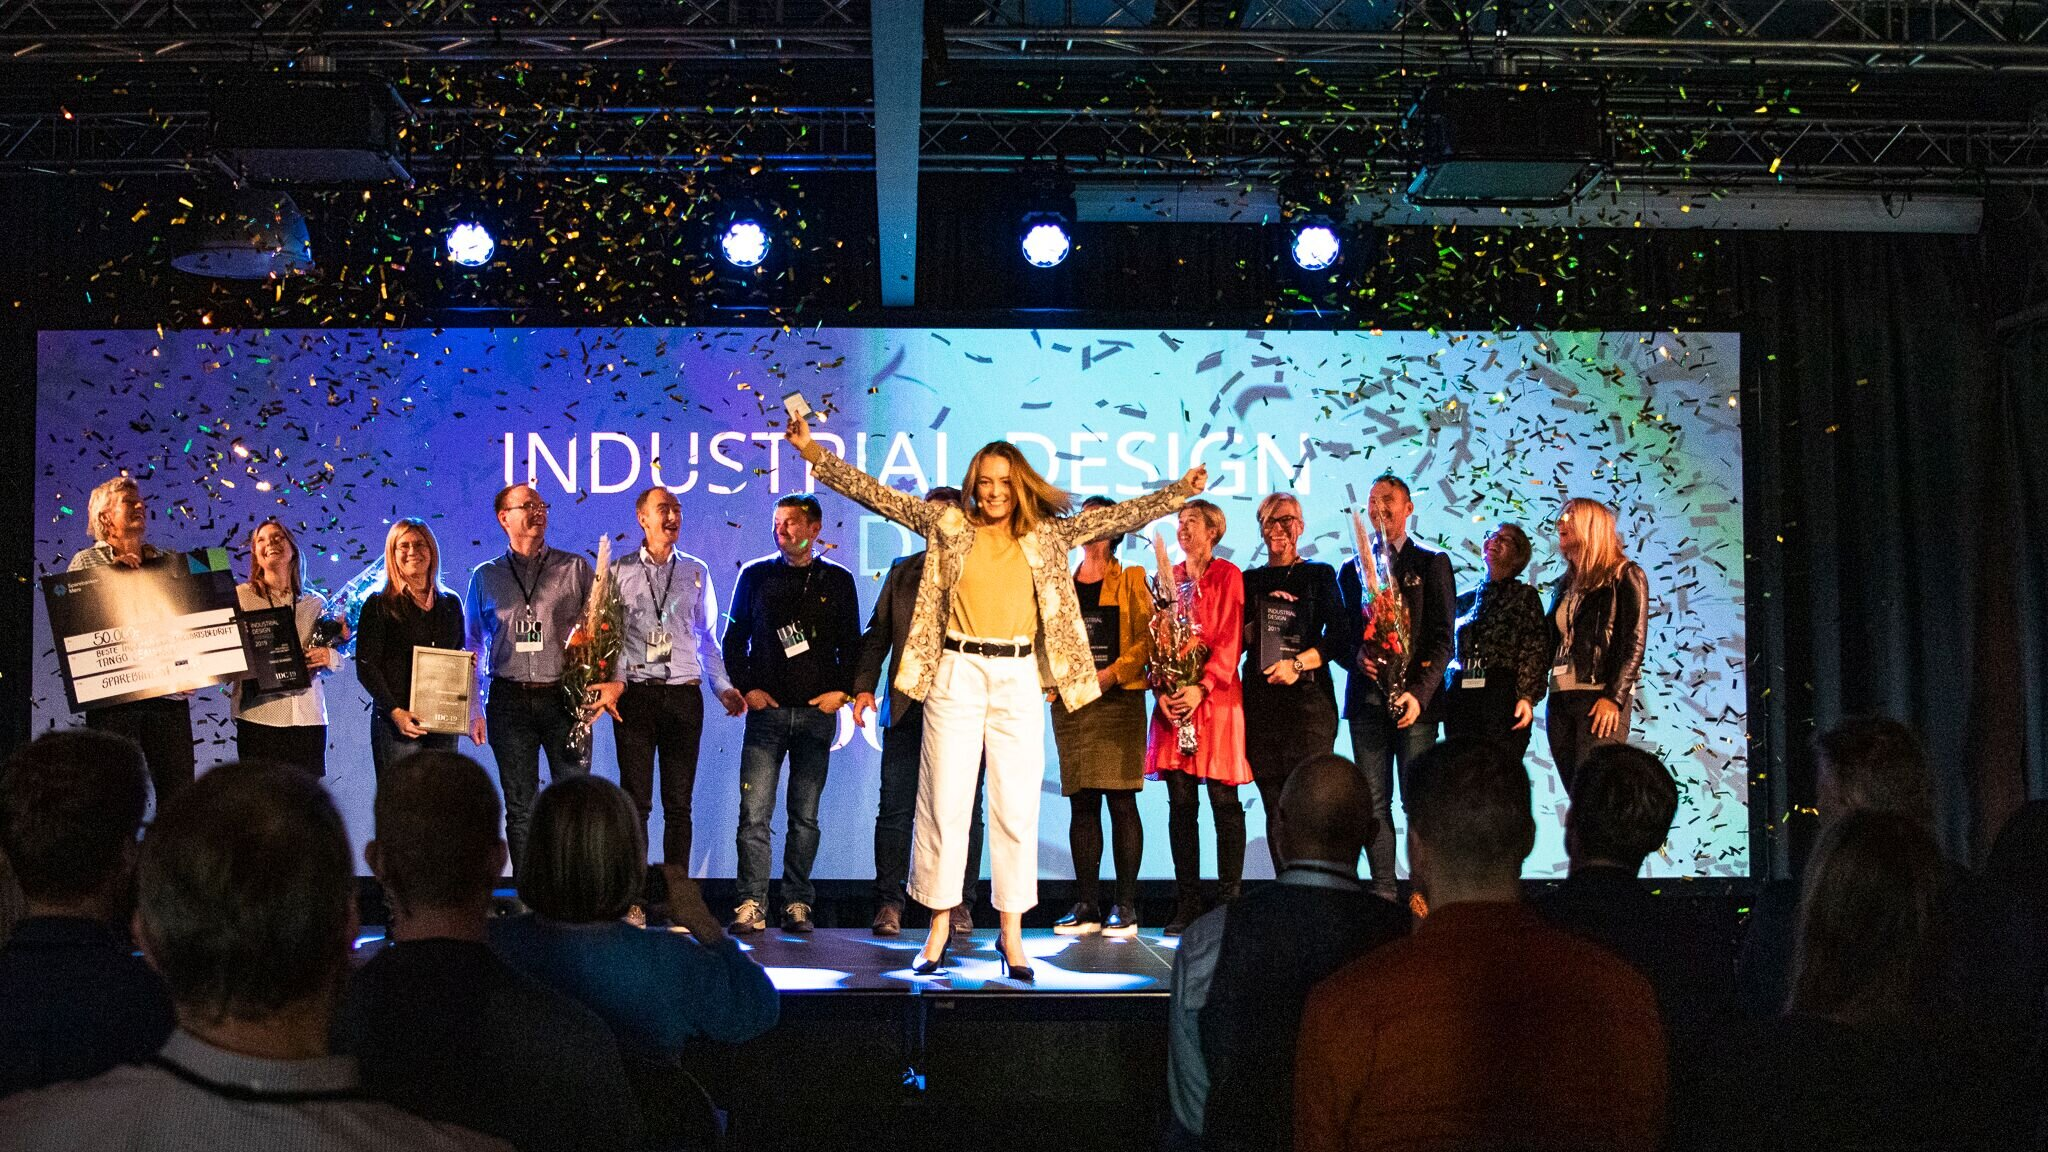 The price winners at the Industrial Design Conference 2019 at Giske, Norway. Foto: Elias Storøy (Instagram: eliasstoroy95)